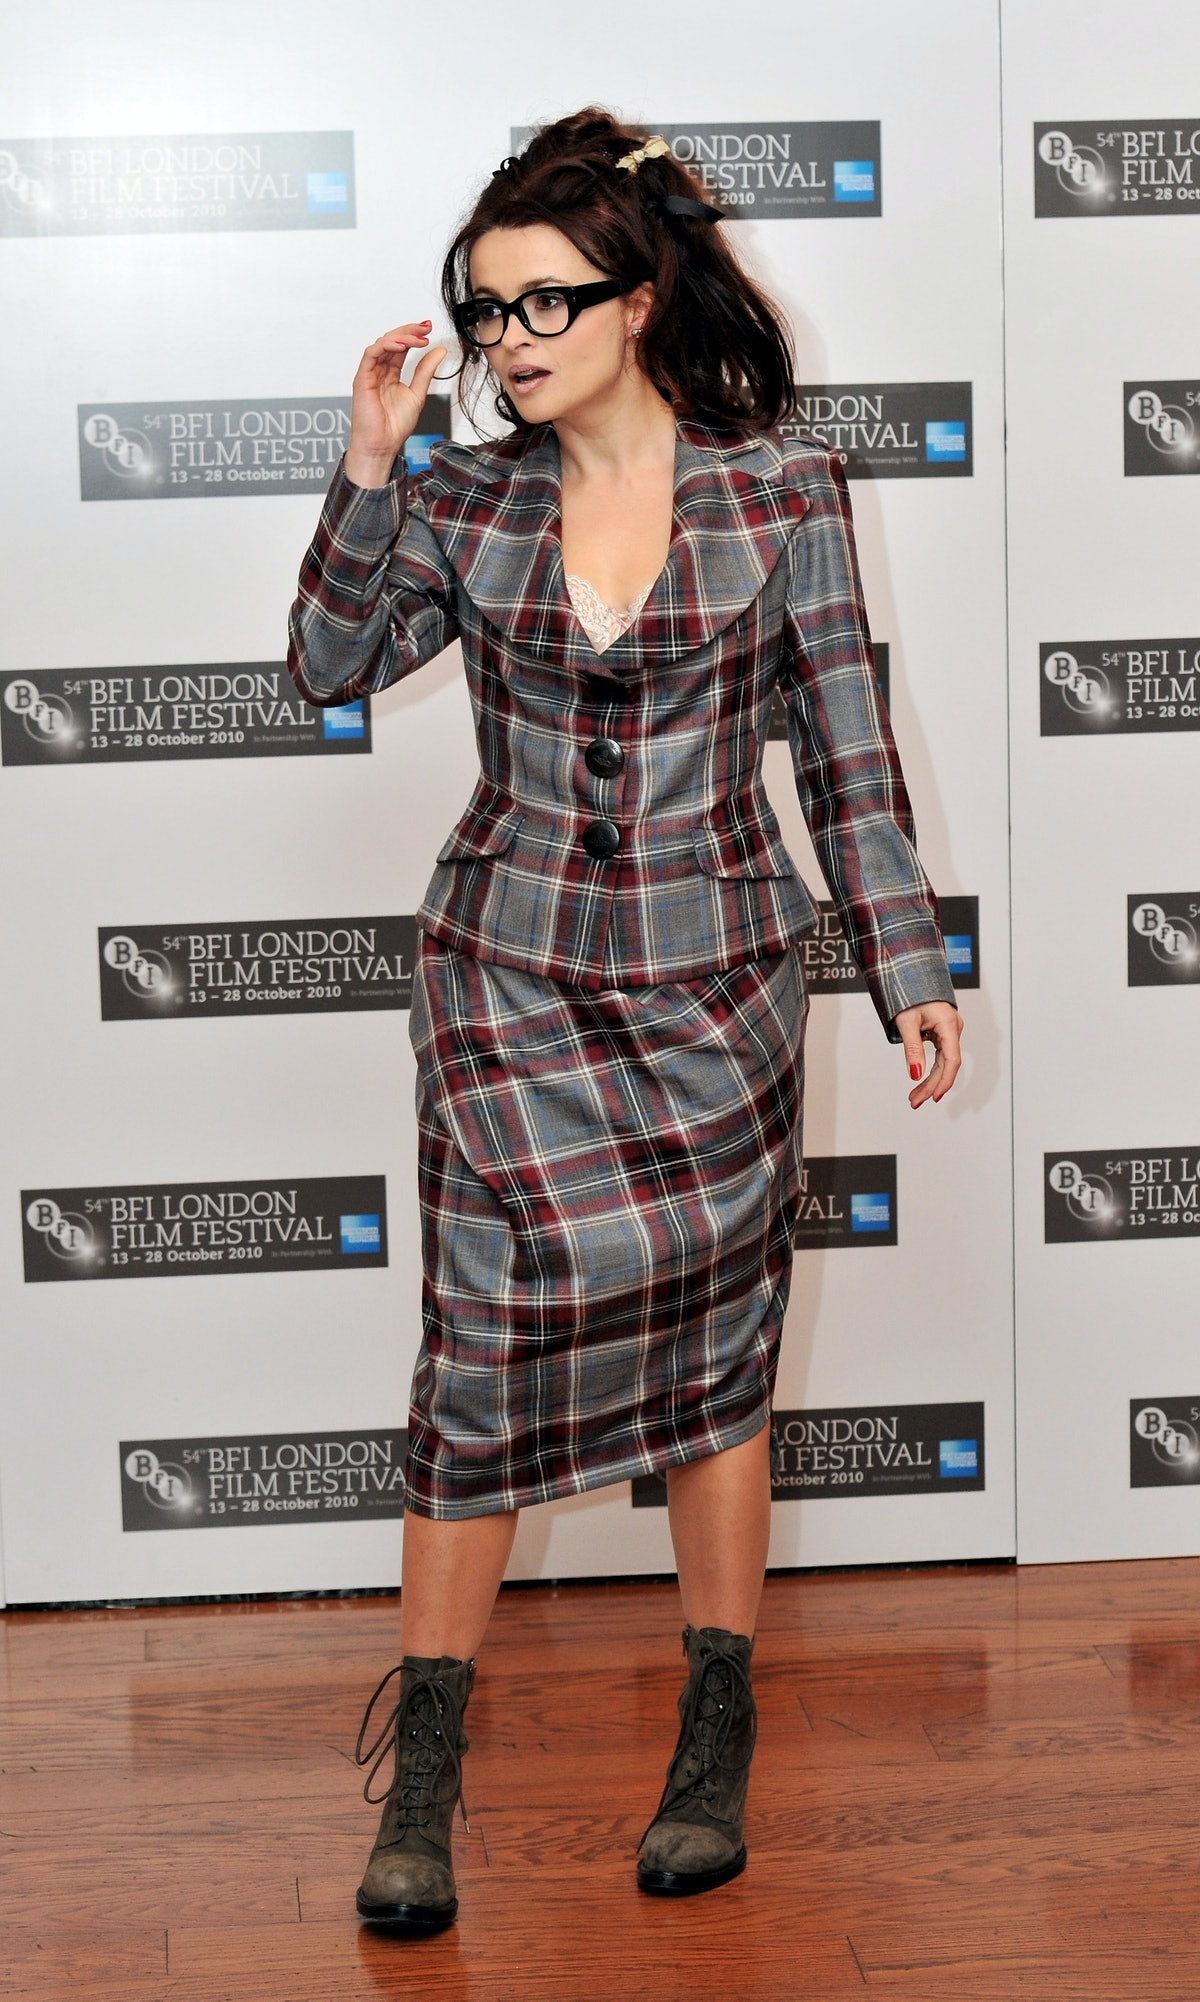 HBC in plaid skirt suit and glasses